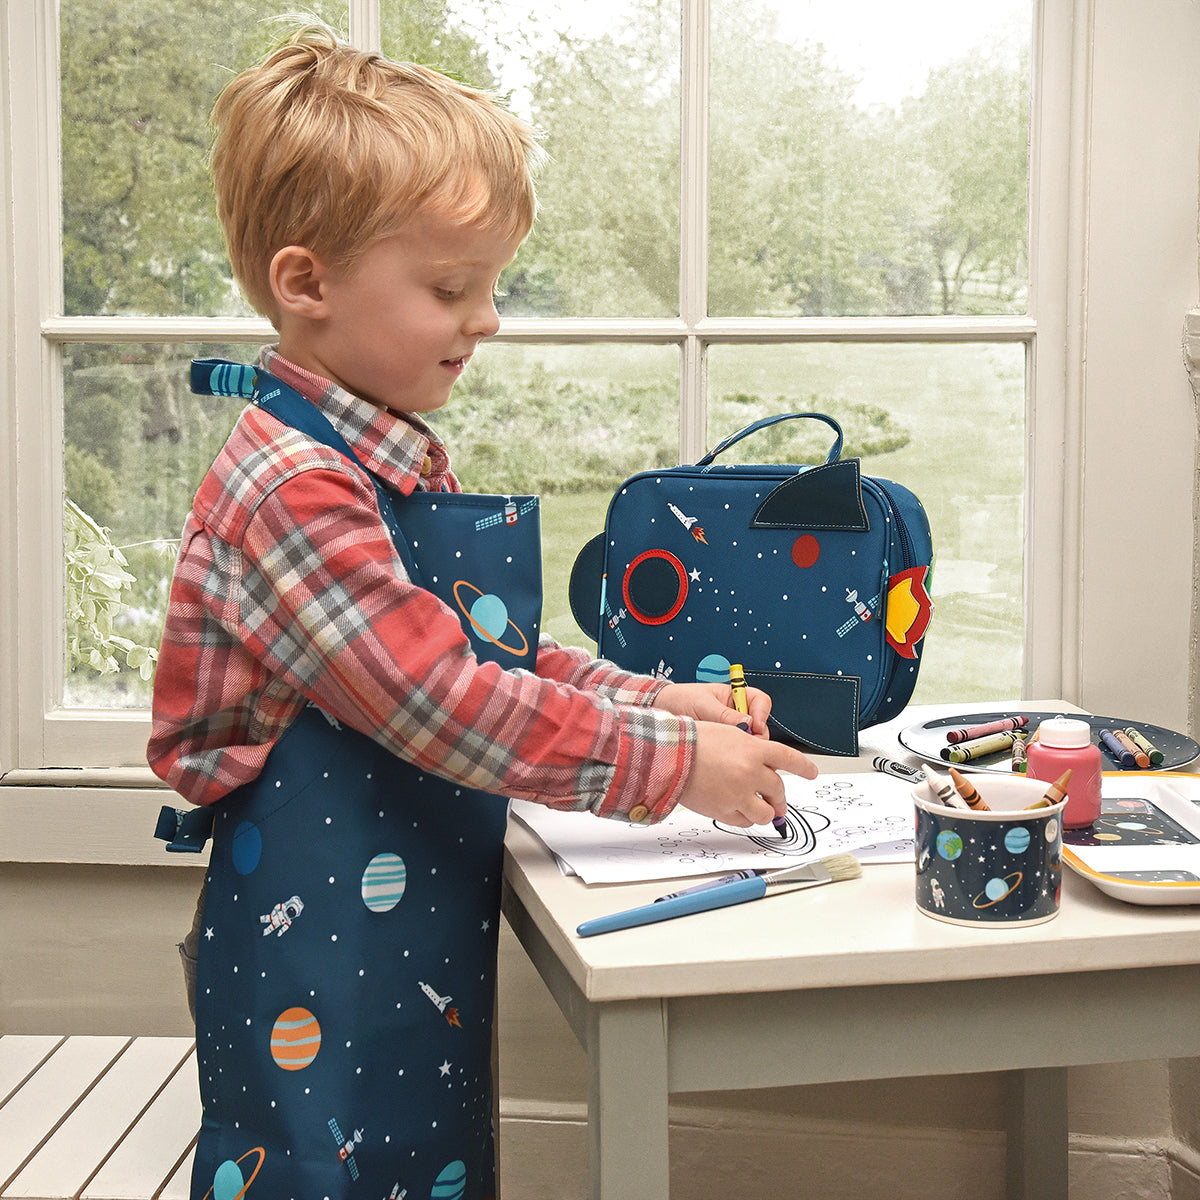 Kids activities while working from home by Sophie Allport